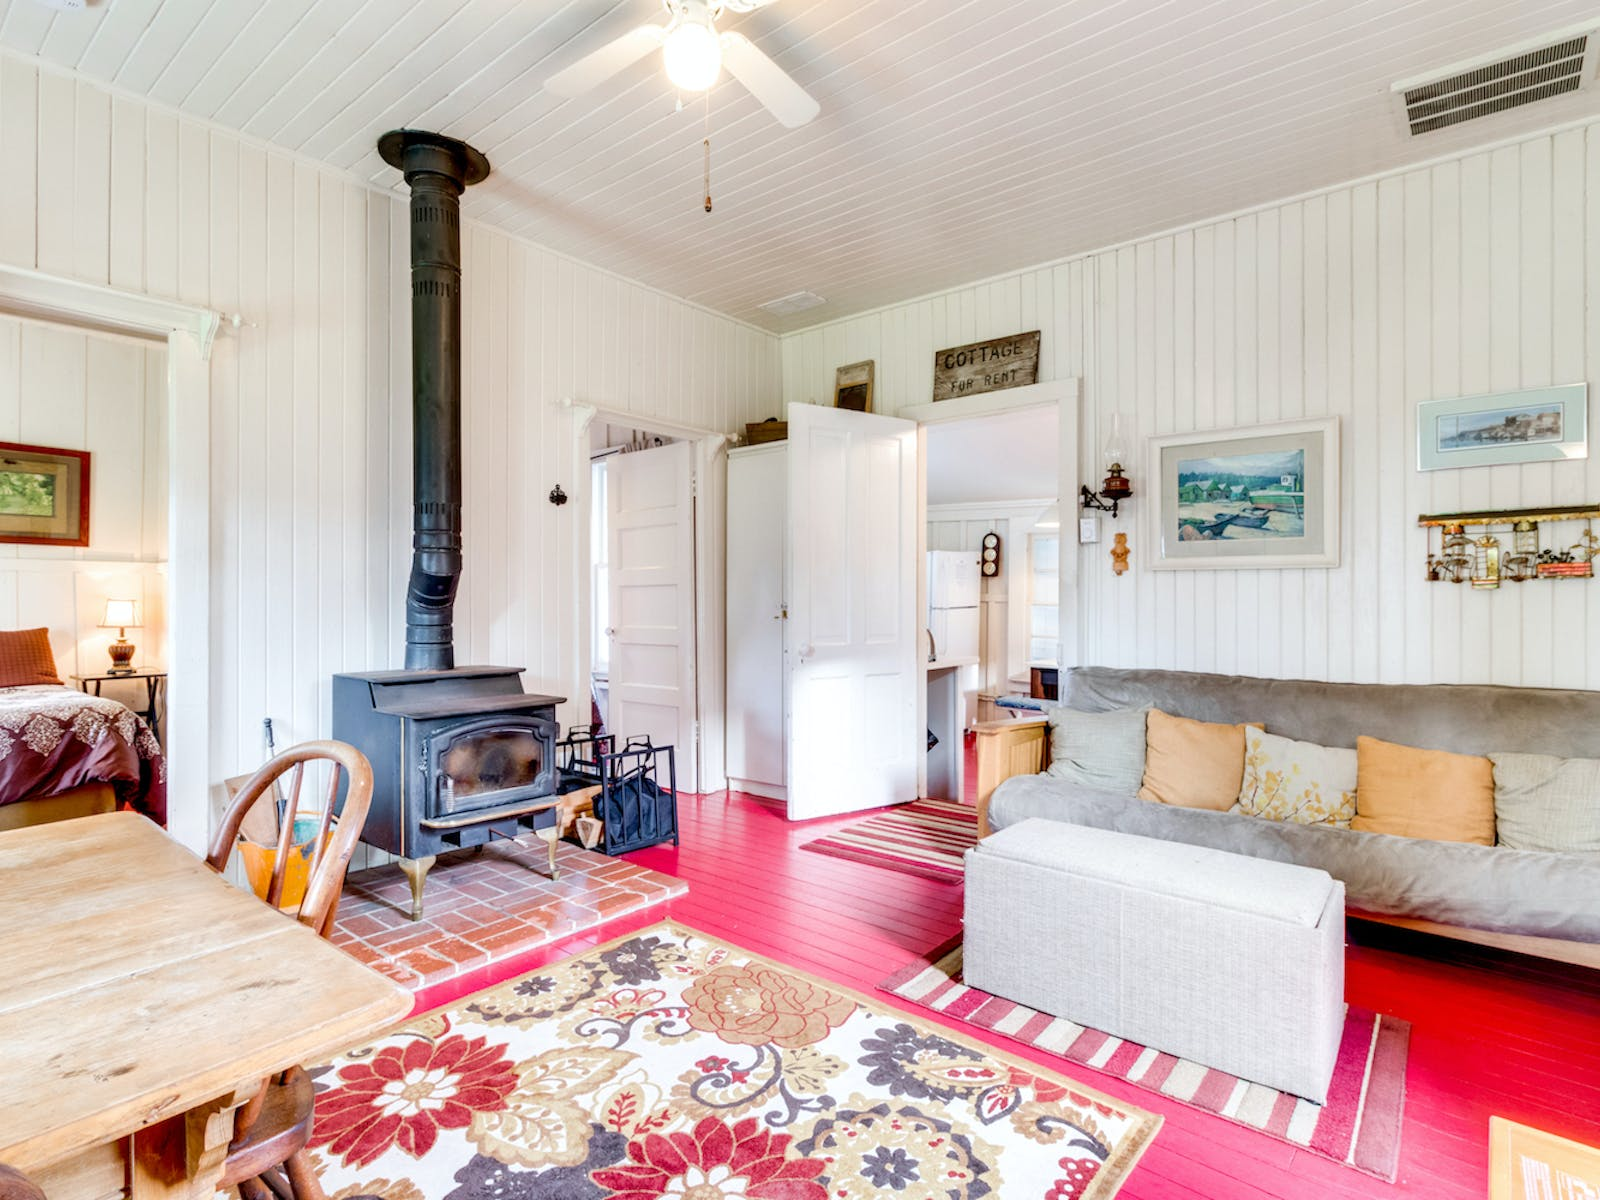 bright living room with an old fireplace